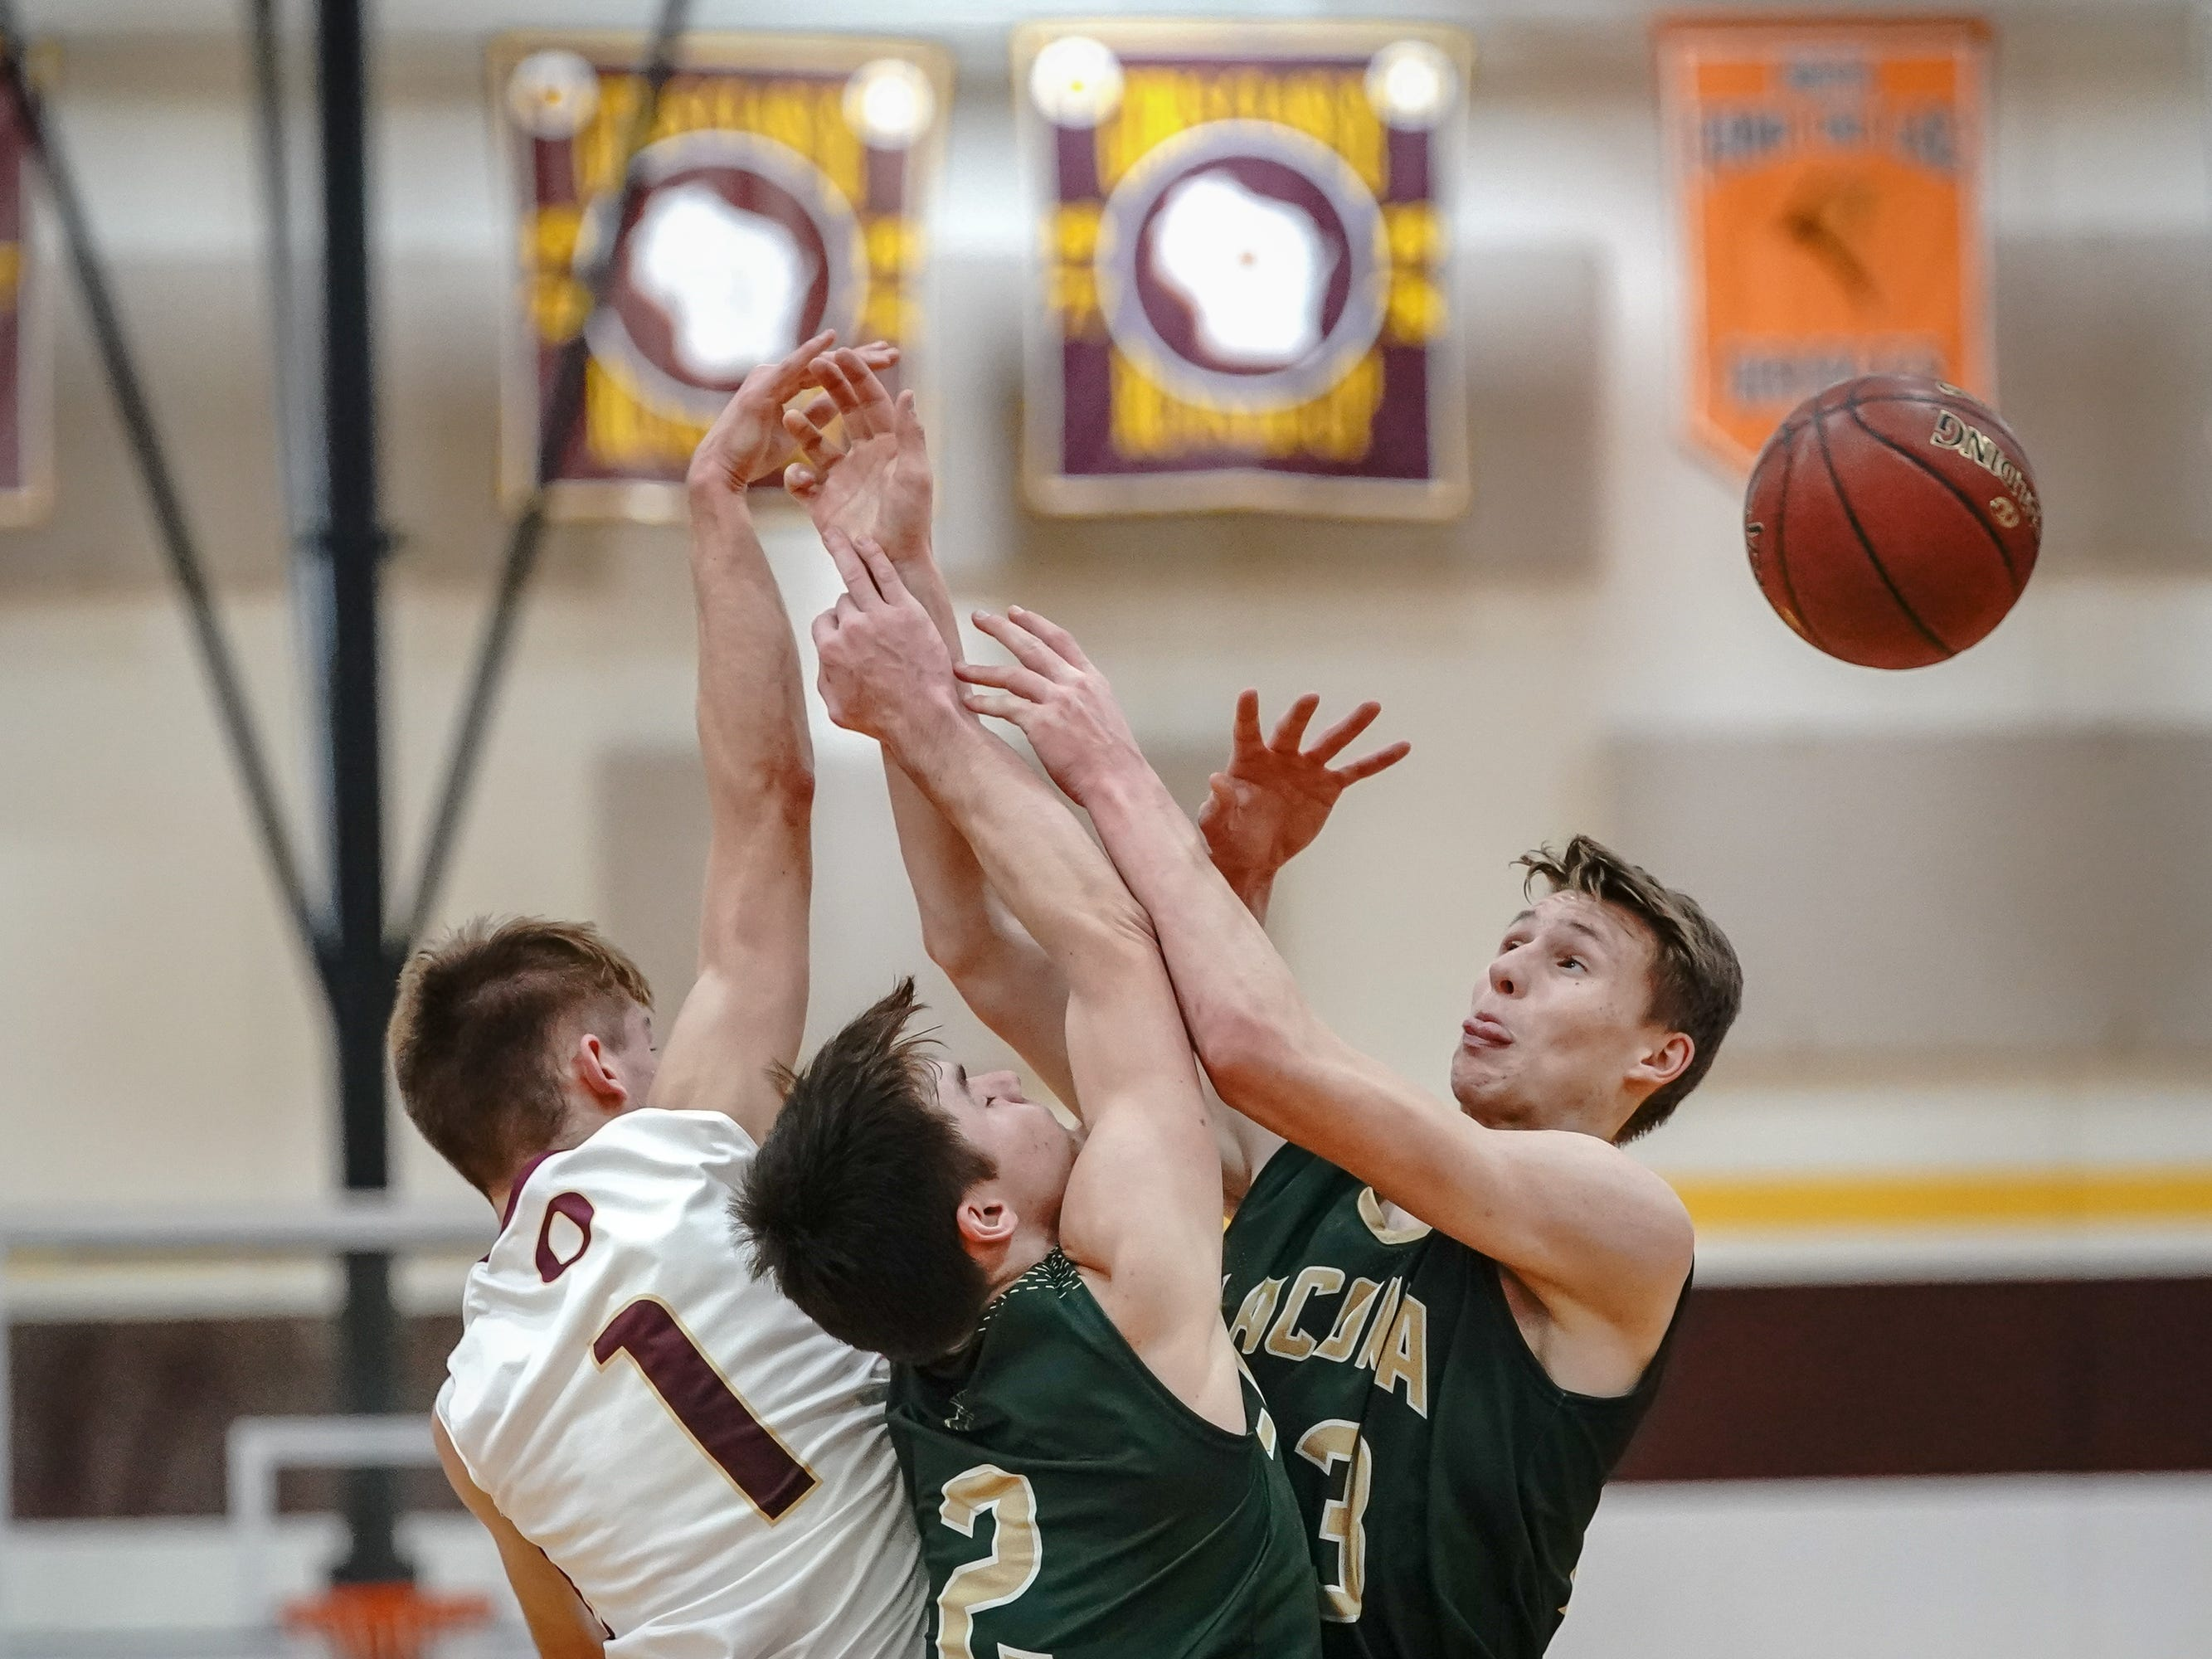 Trevor Molitor (1) of Omro and Caden Wittchow (2) and Reed Gunnink (3) of Laconia battle for a rebound. The Omro Foxes hosted the Laconia Spartans in a Flyway Conference basketball game Friday evening, January 11, 2019.